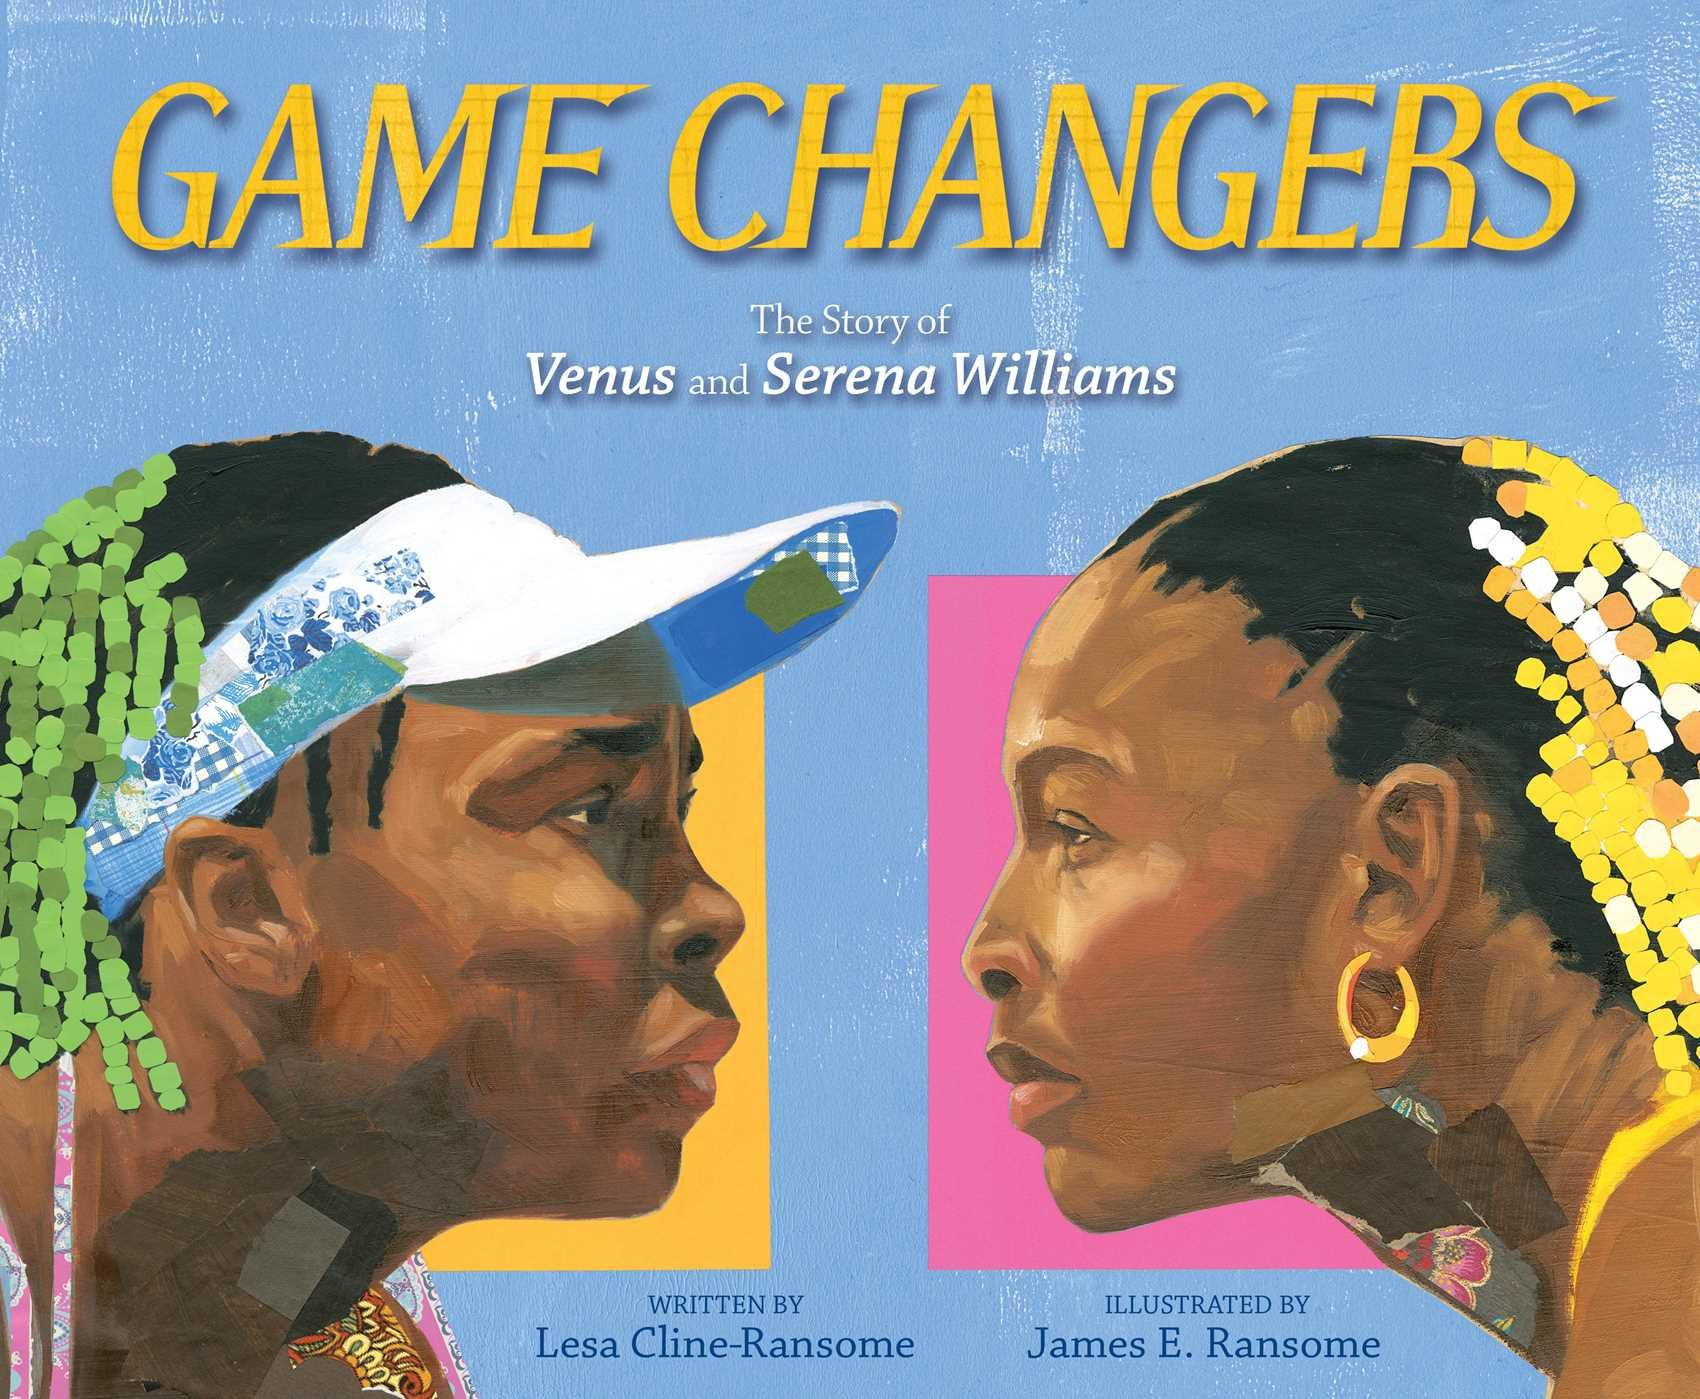 Game Changers by Lesa Cline-Ransome | SLJ Review